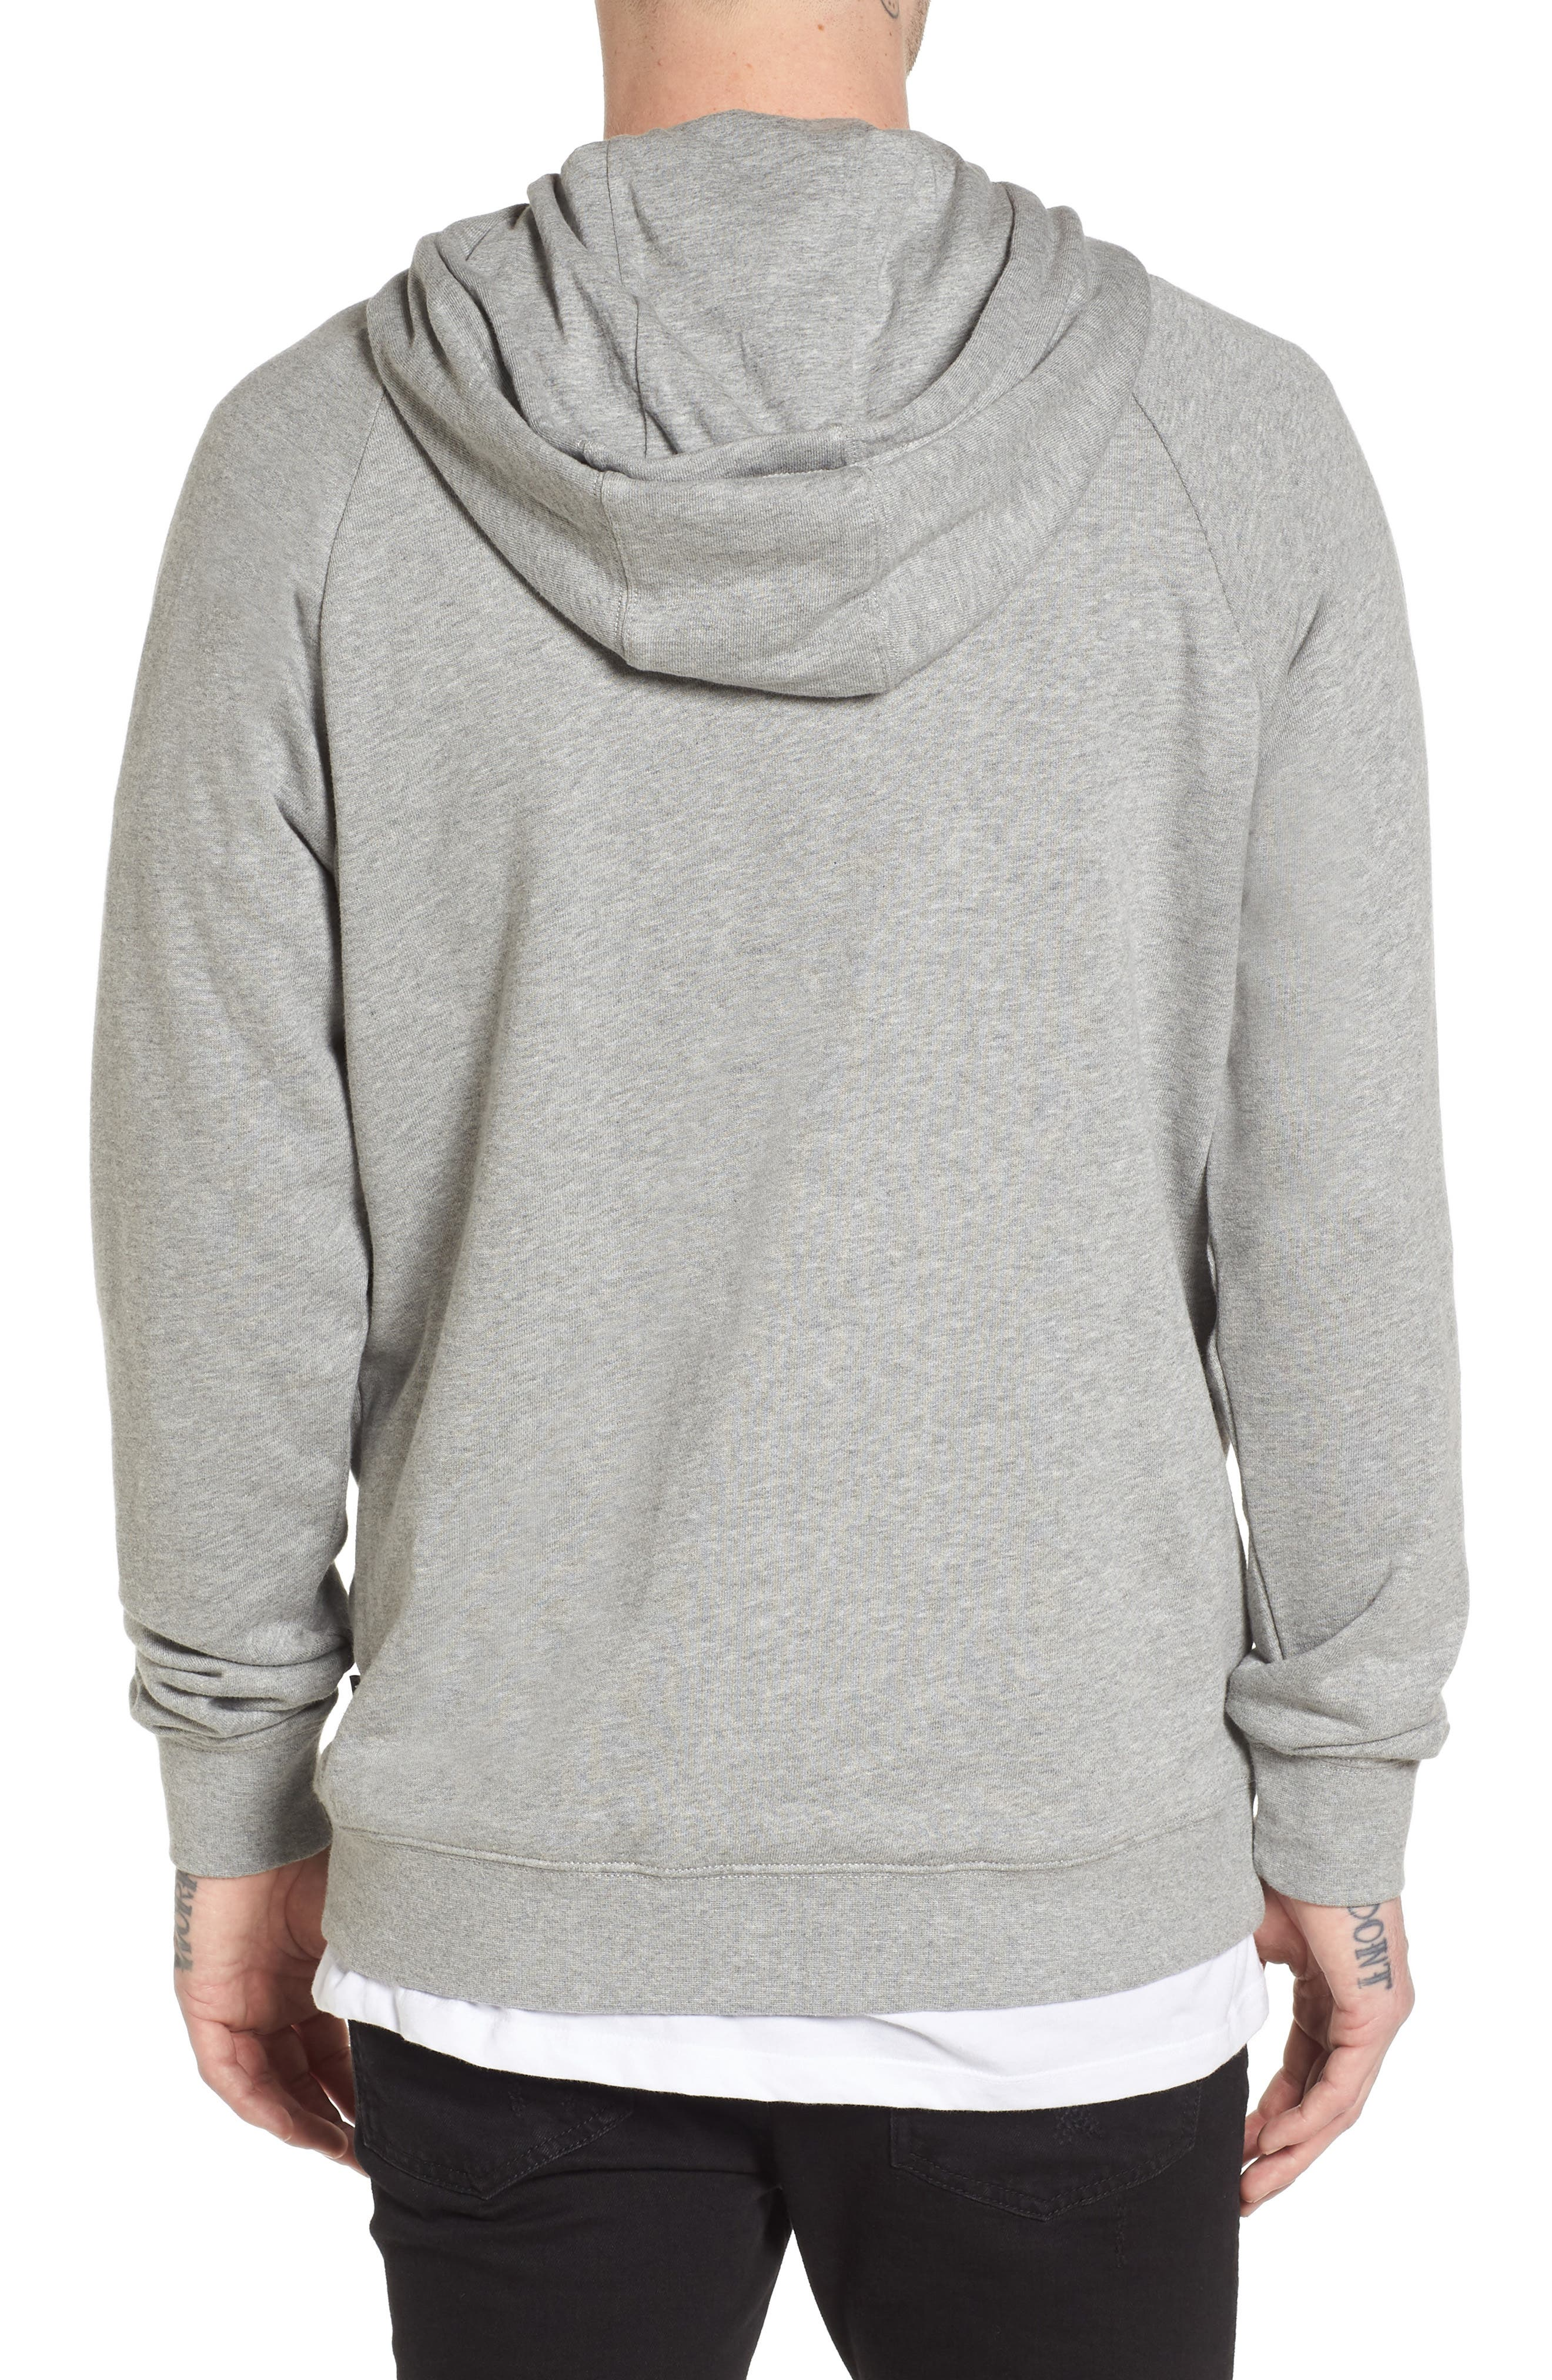 Stacked Rubber Hoodie Sweatshirt,                             Alternate thumbnail 2, color,                             Cement Heather